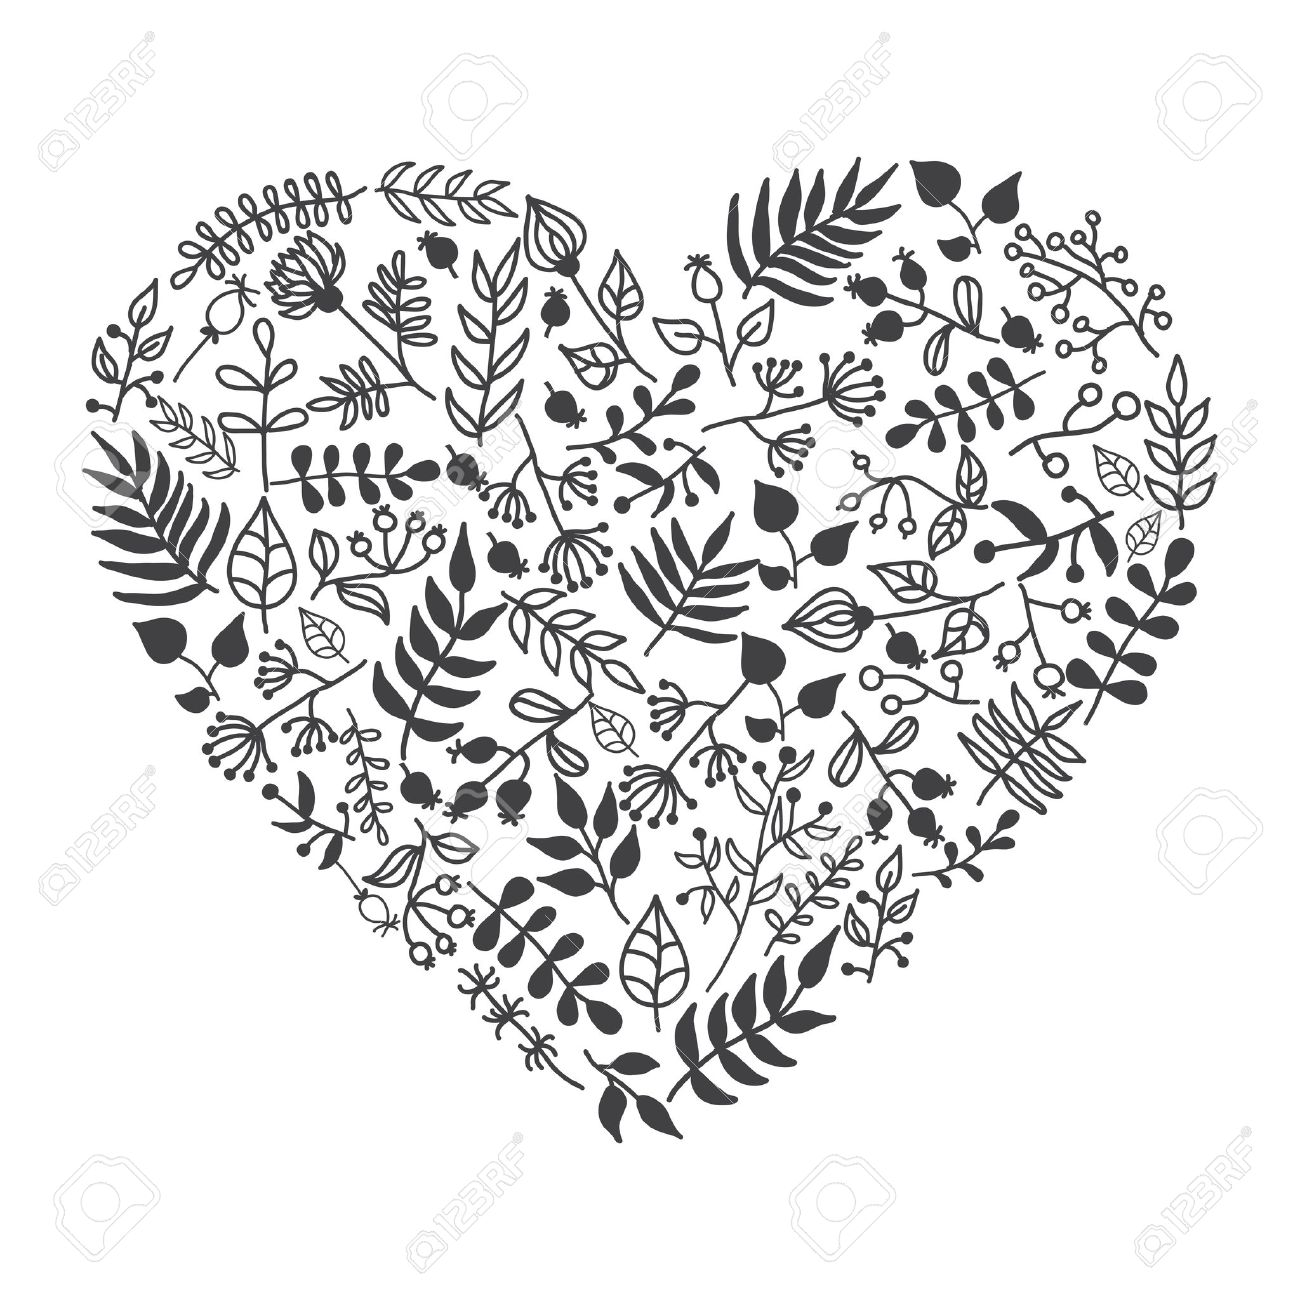 Vector Rustic Floral Heart Shape Illustration Hand Draw Great For Wedding Invitations